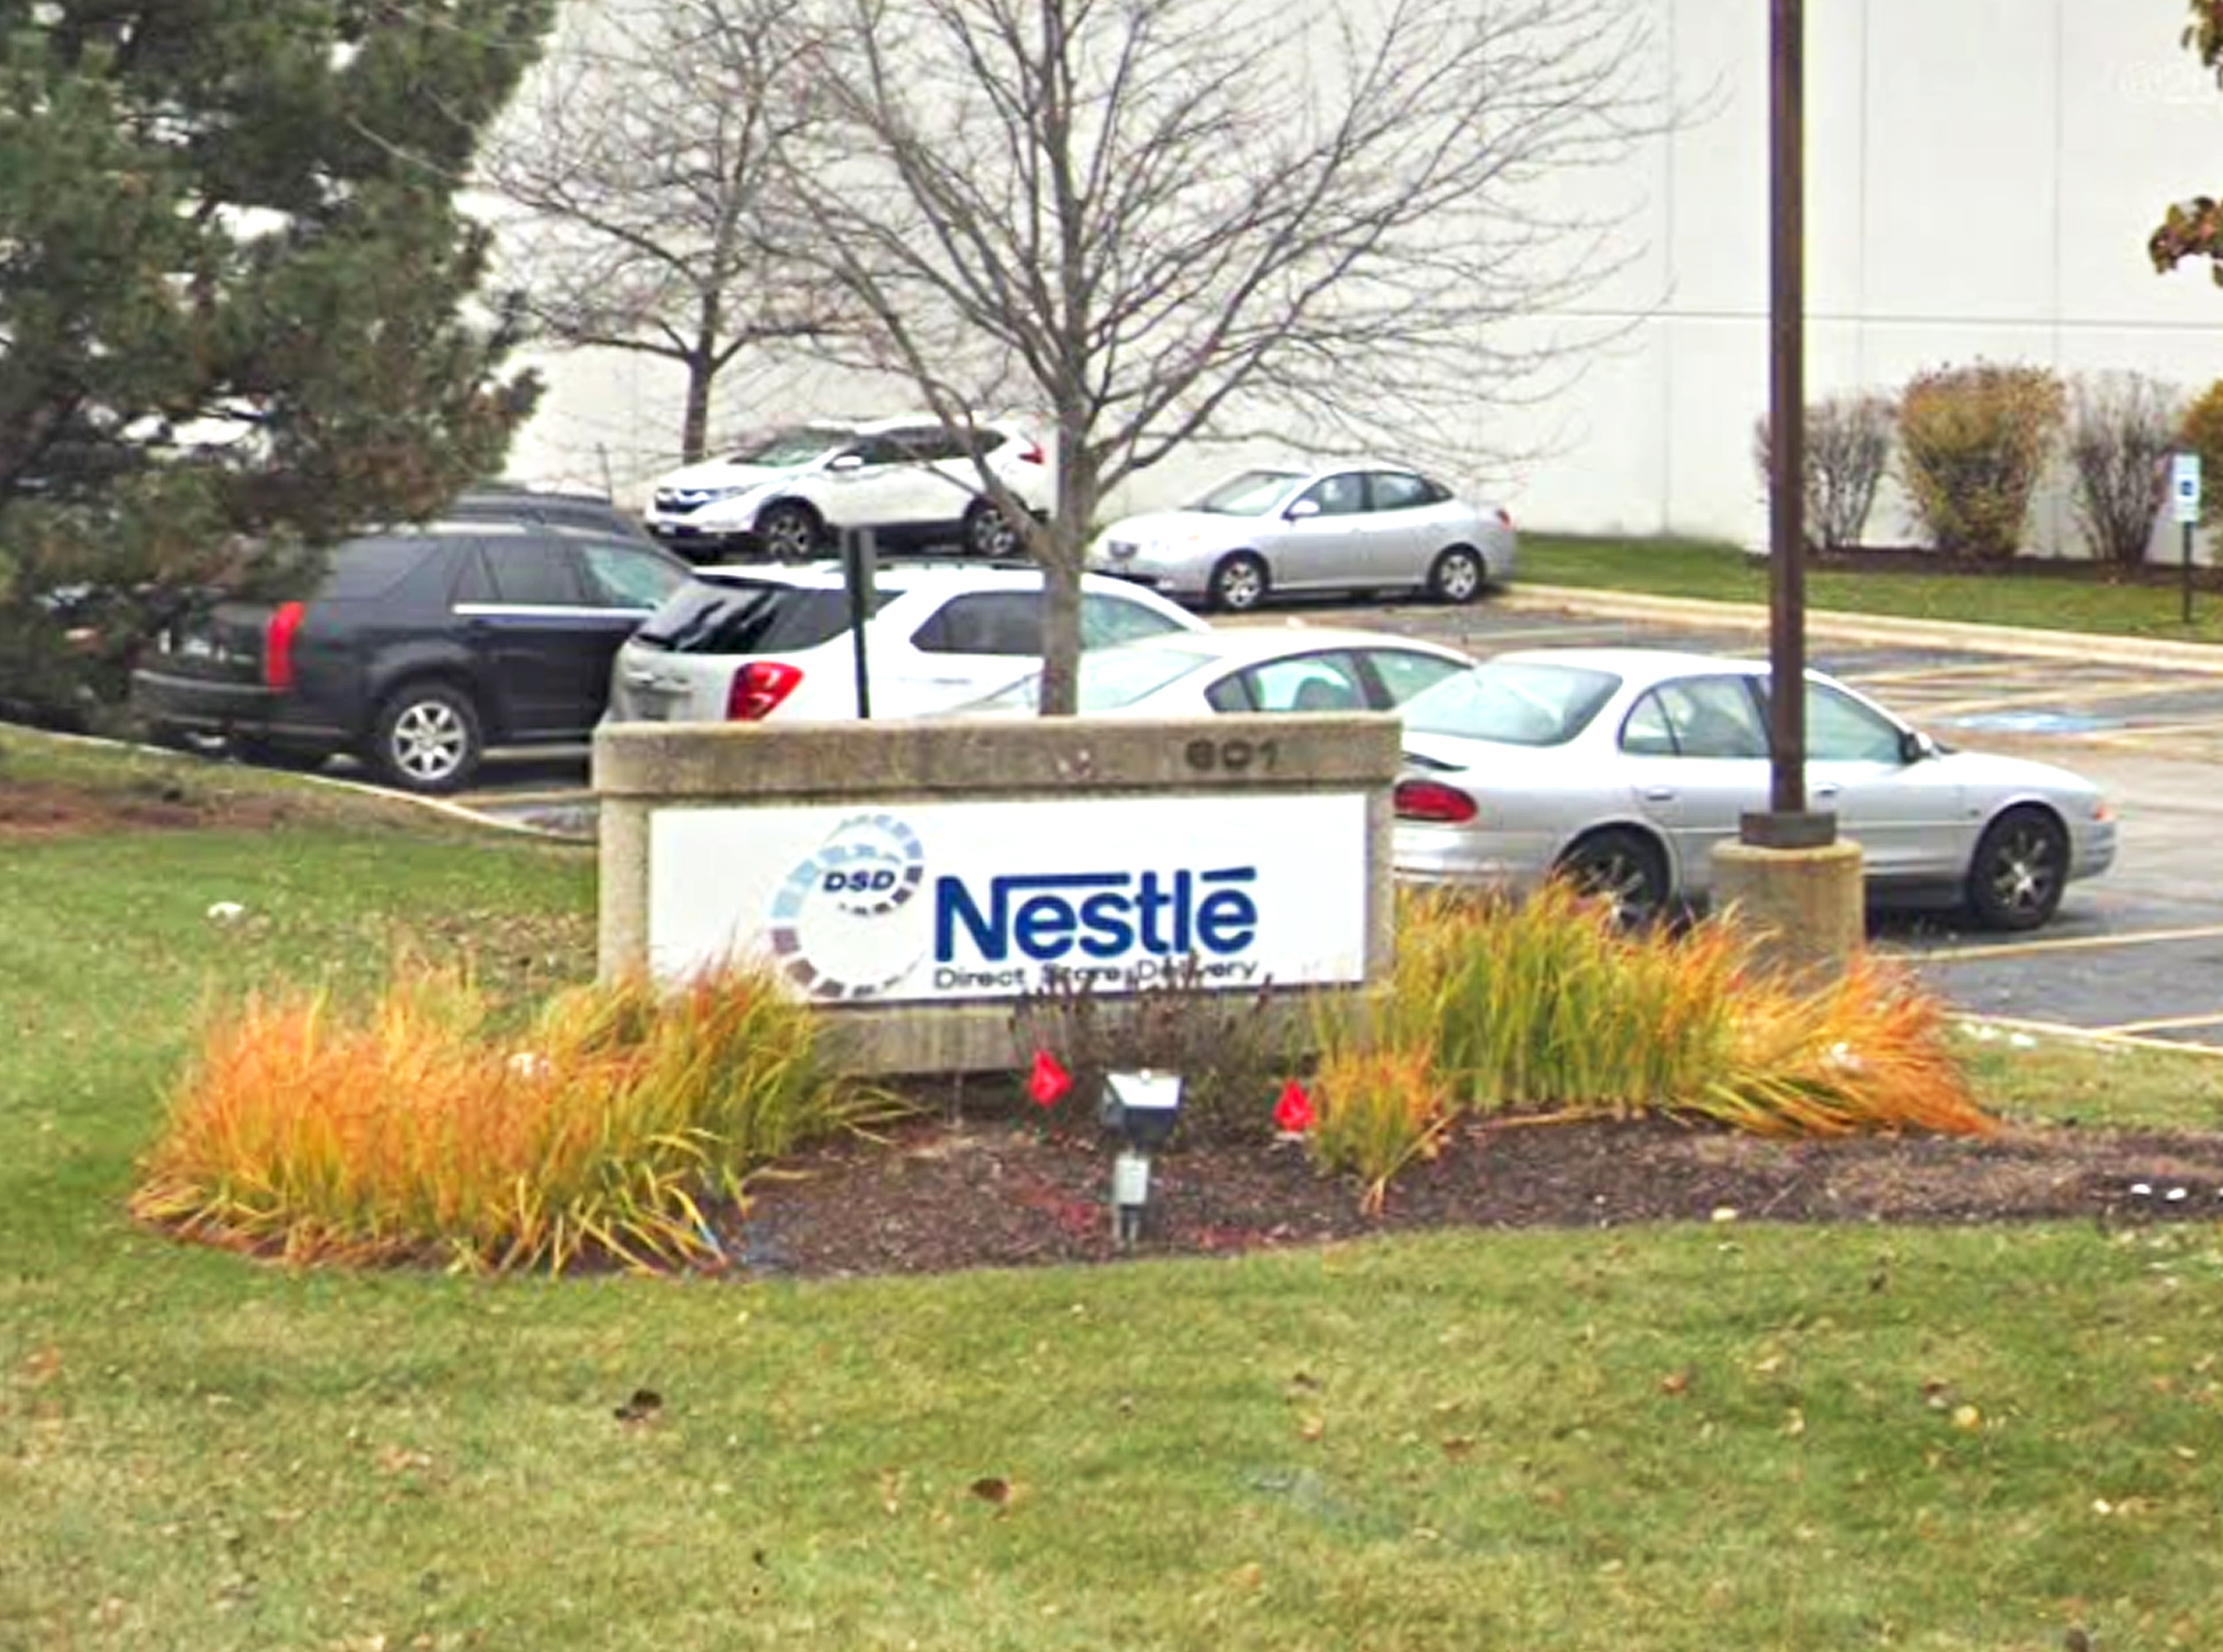 Nestlé USA distribution center at 601 Wall St. in Glendale Heights